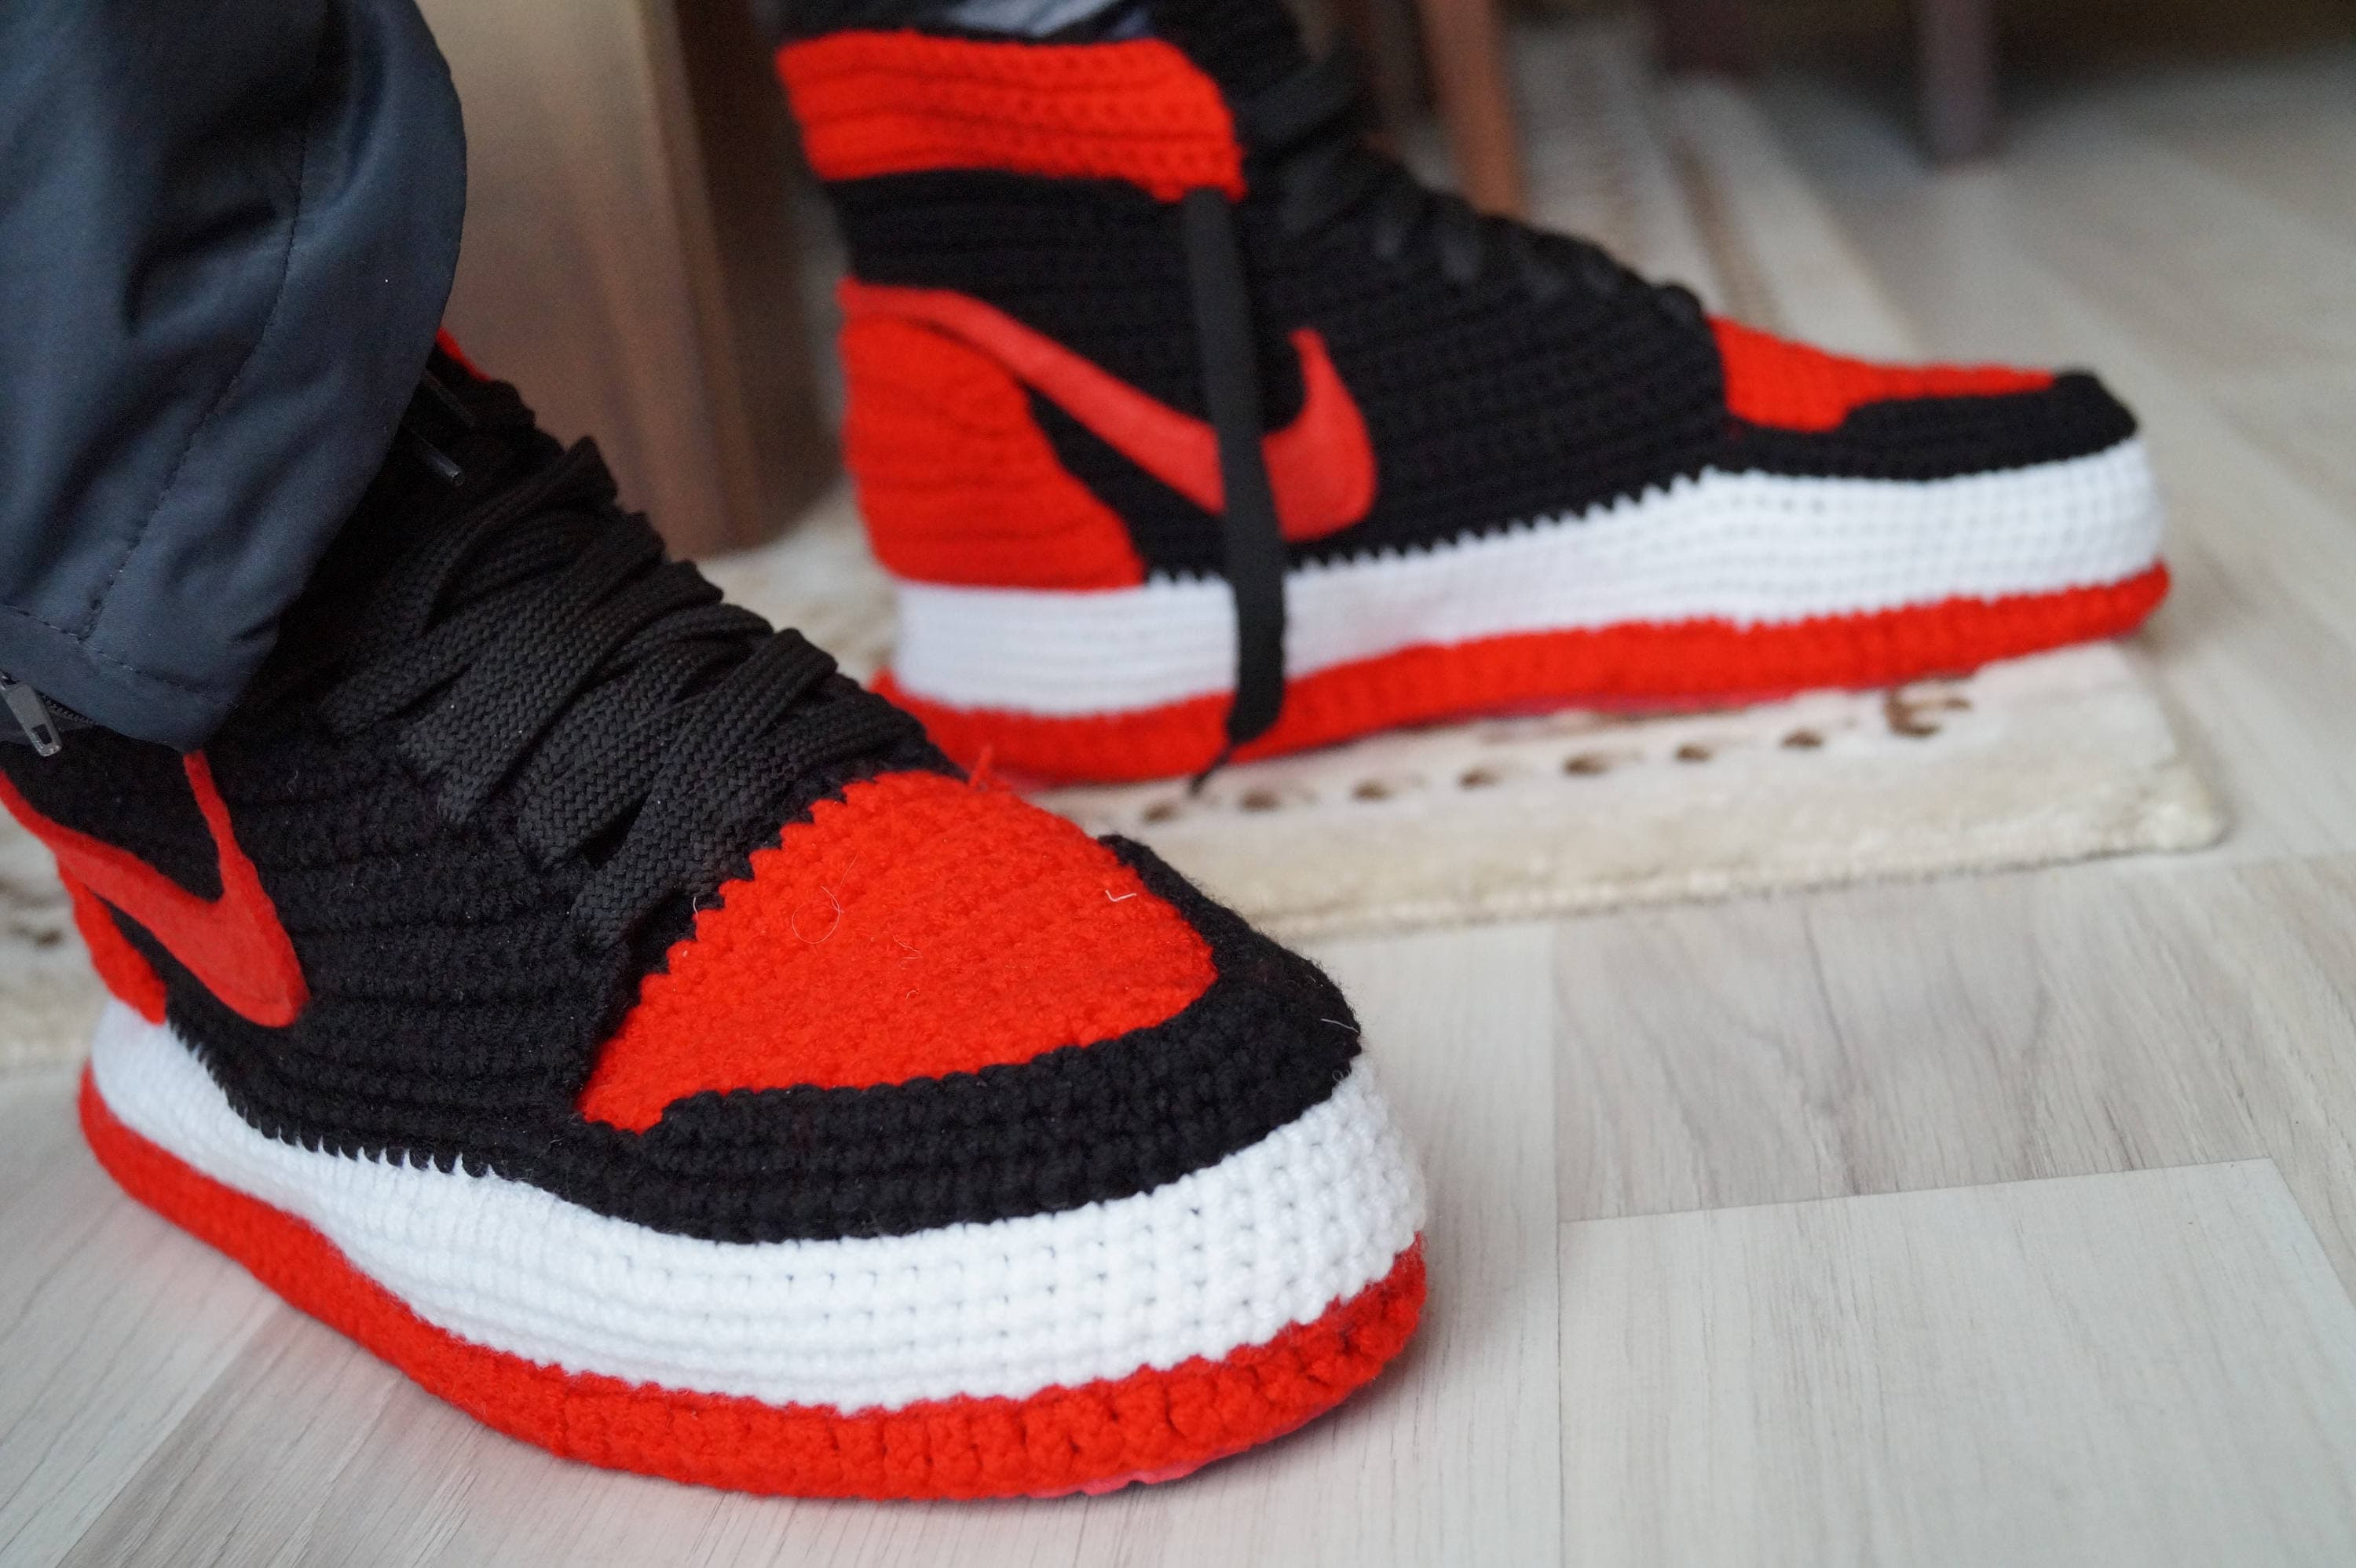 Crochet Nike Air Jordan 1 Retro Home Shoe, Michael Jordan Shoes, Nike Air  Jordan